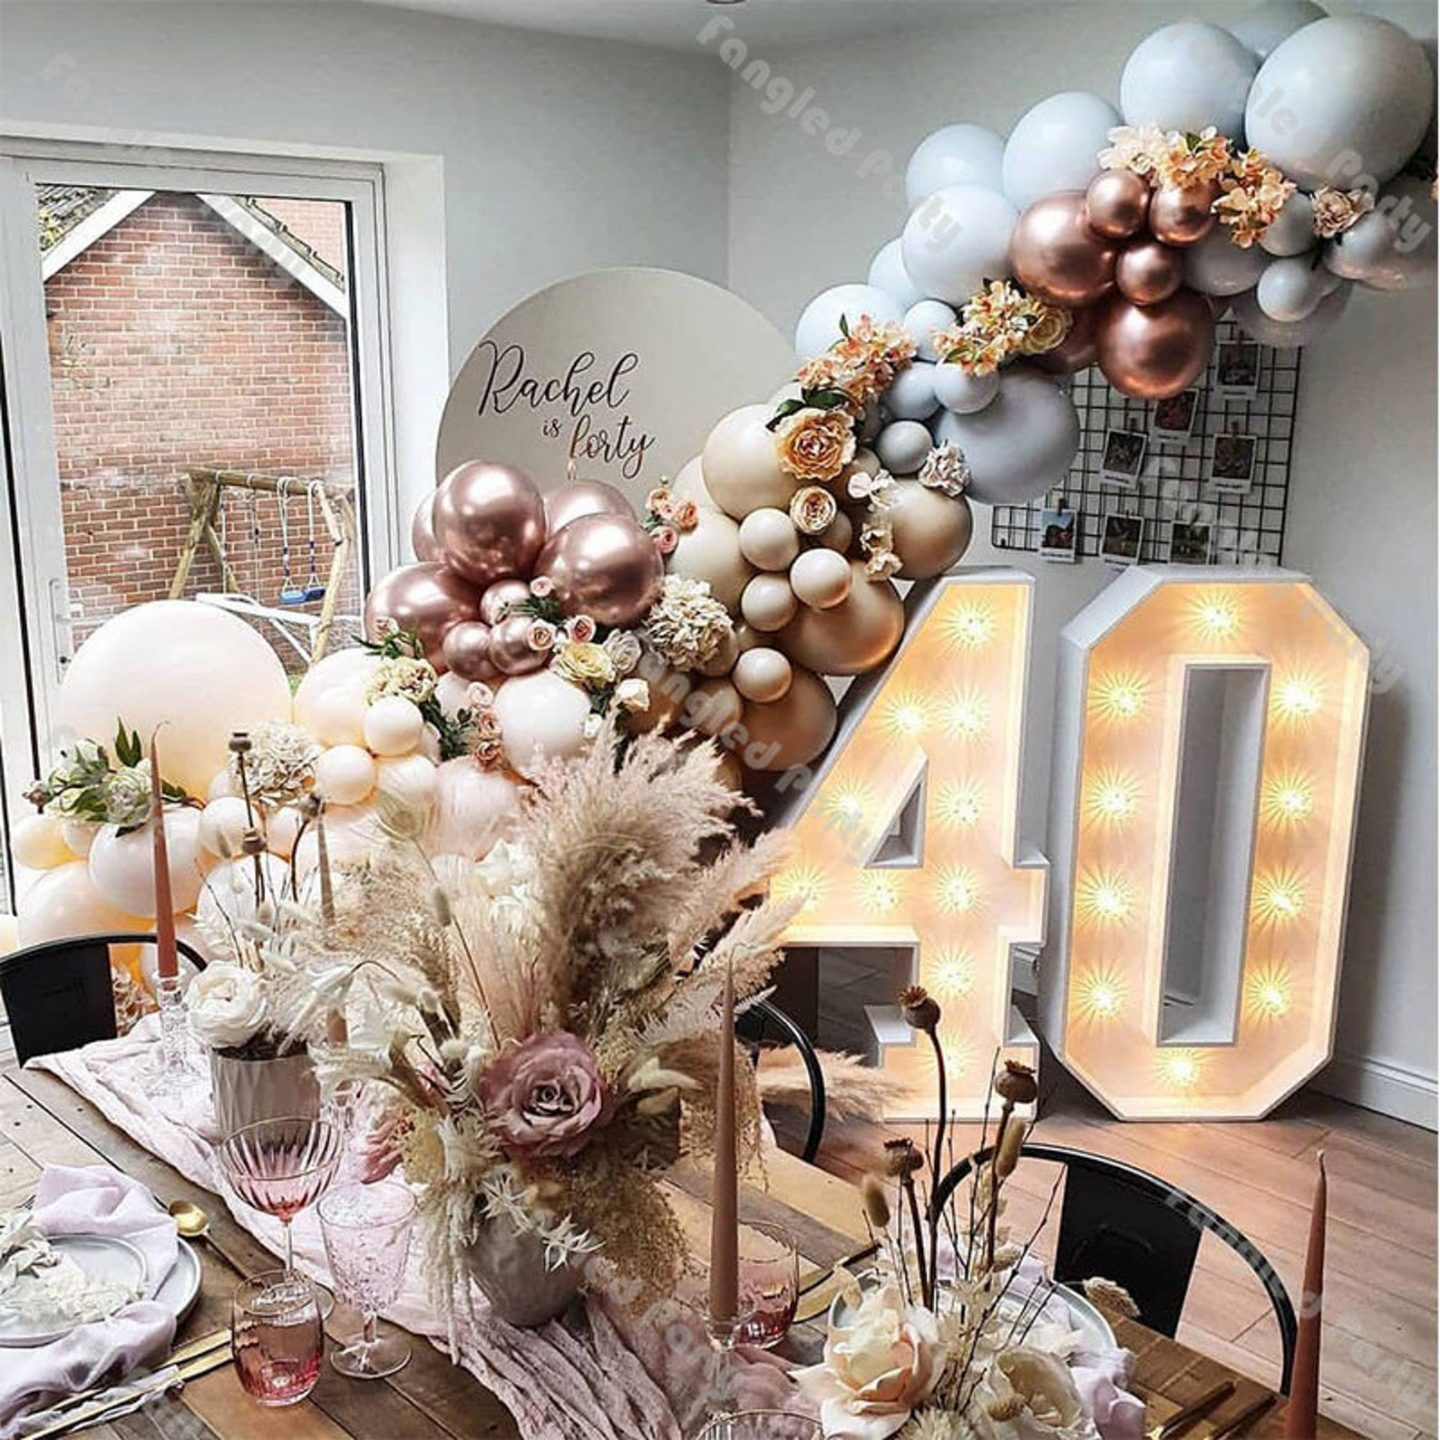 Rose gold birthday party decorations with balloon garland and dried flowers for 40th birthday